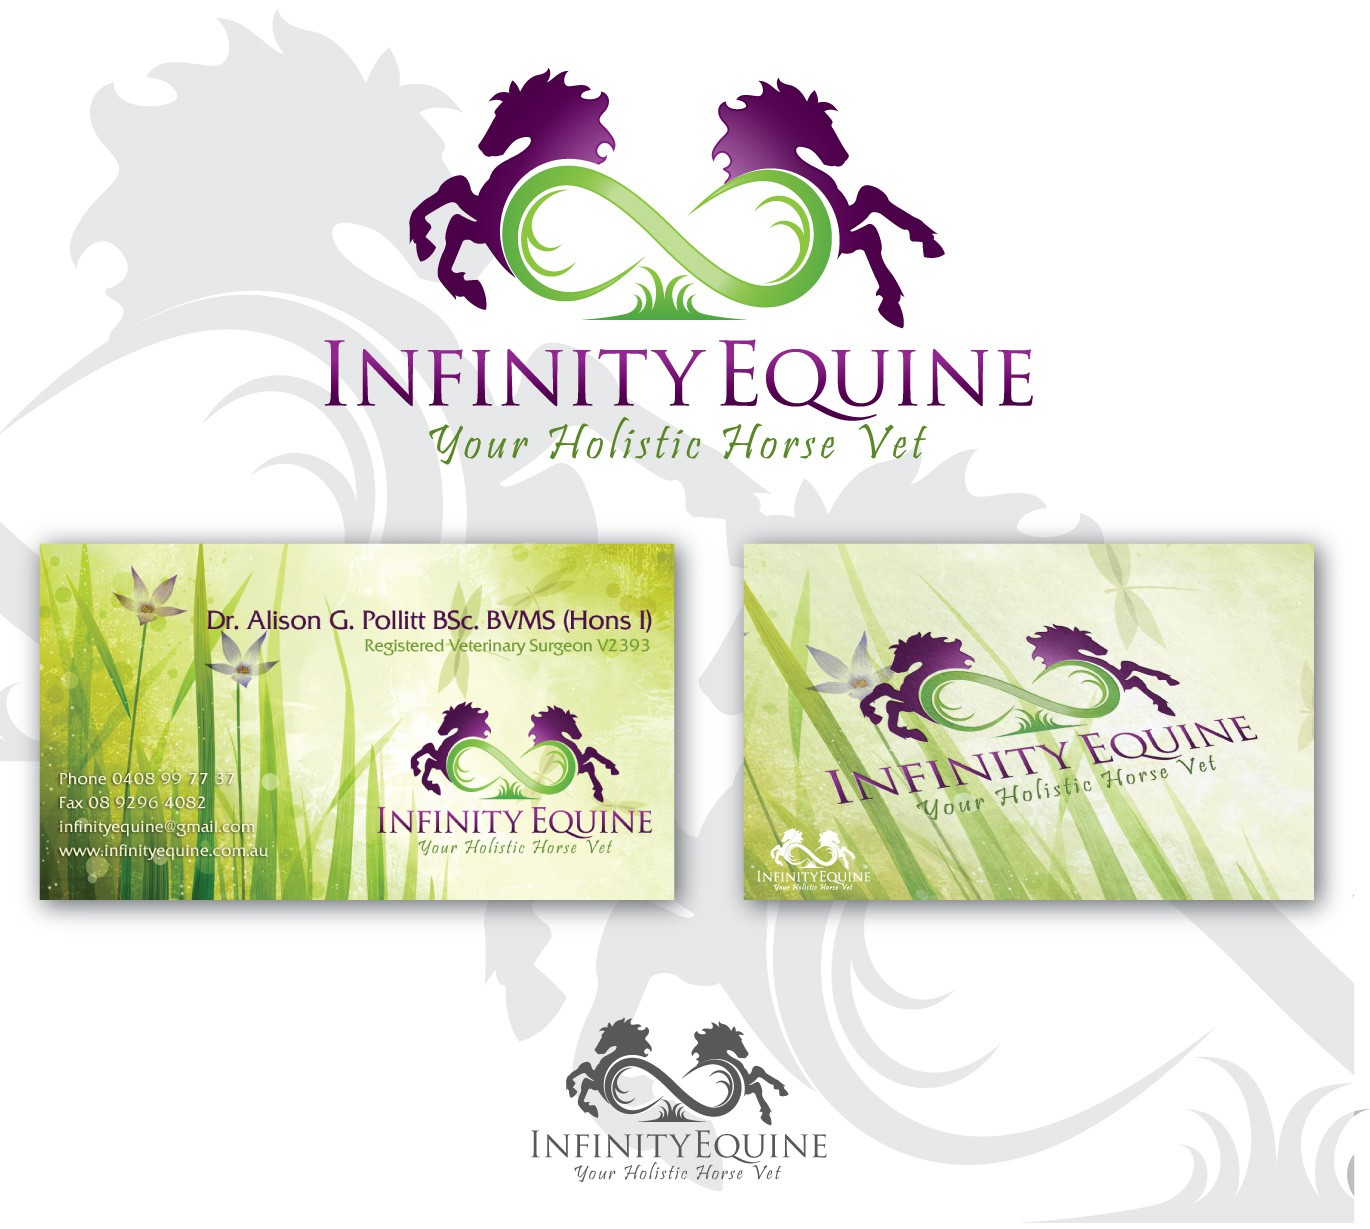 Create the next logo for Infinity Equine